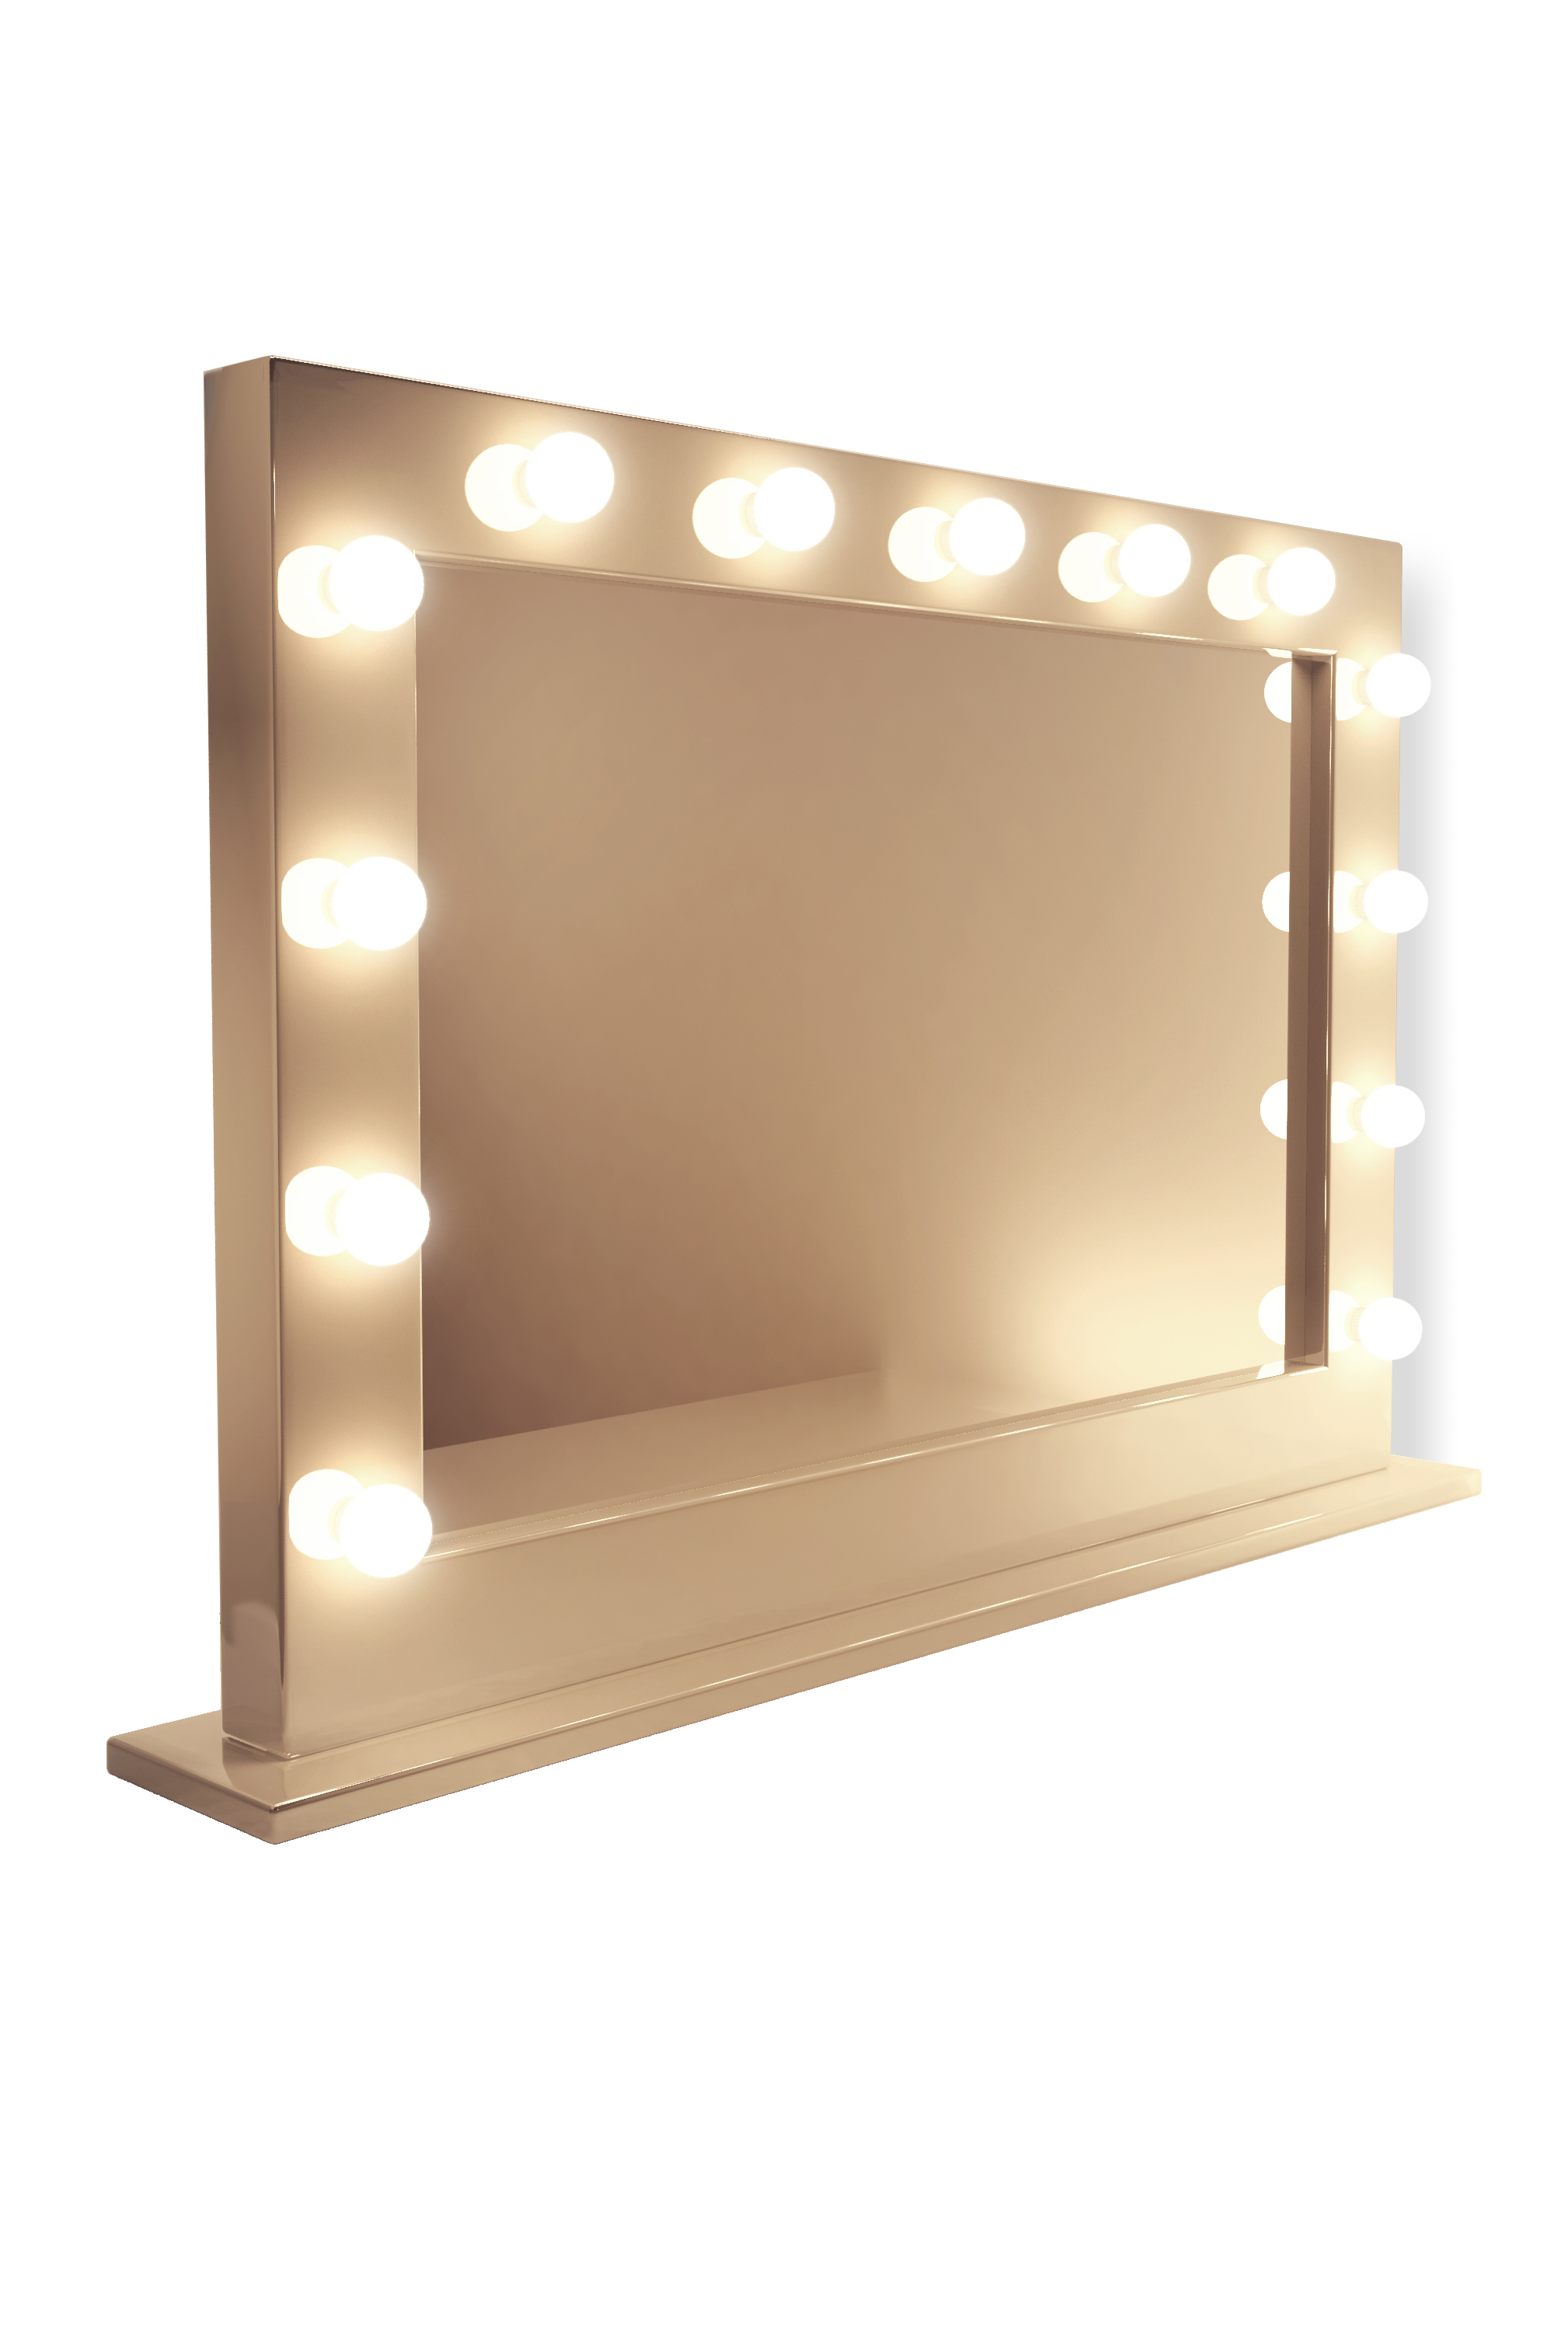 Illuminated Mirrors Table Top Mirror In High Gloss White Jwc